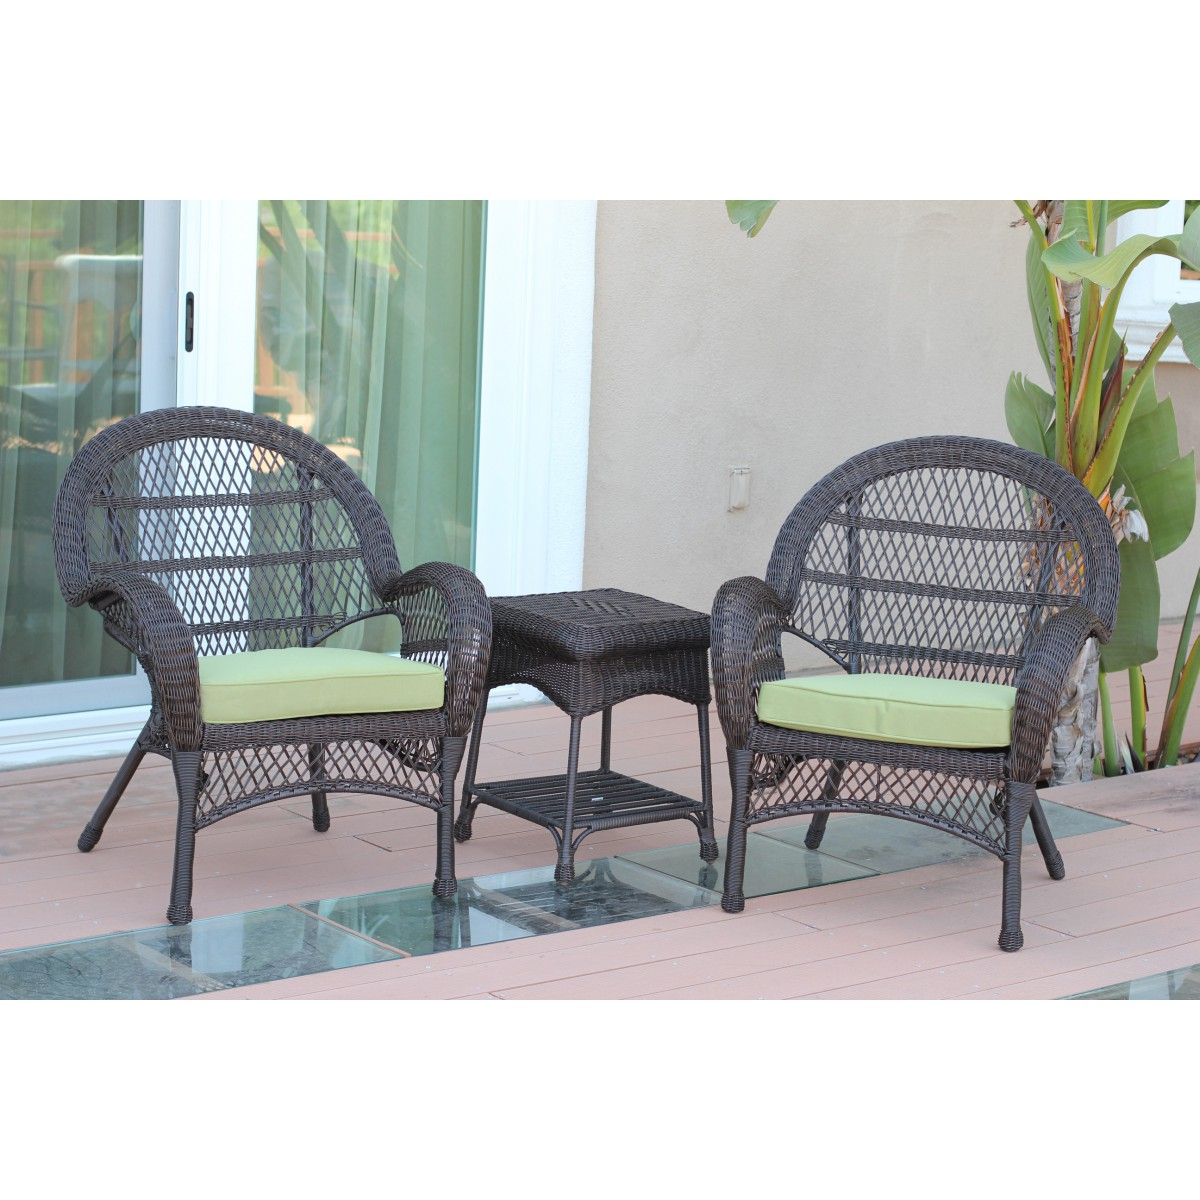 santa maria espresso wicker chair and end table set green cushions